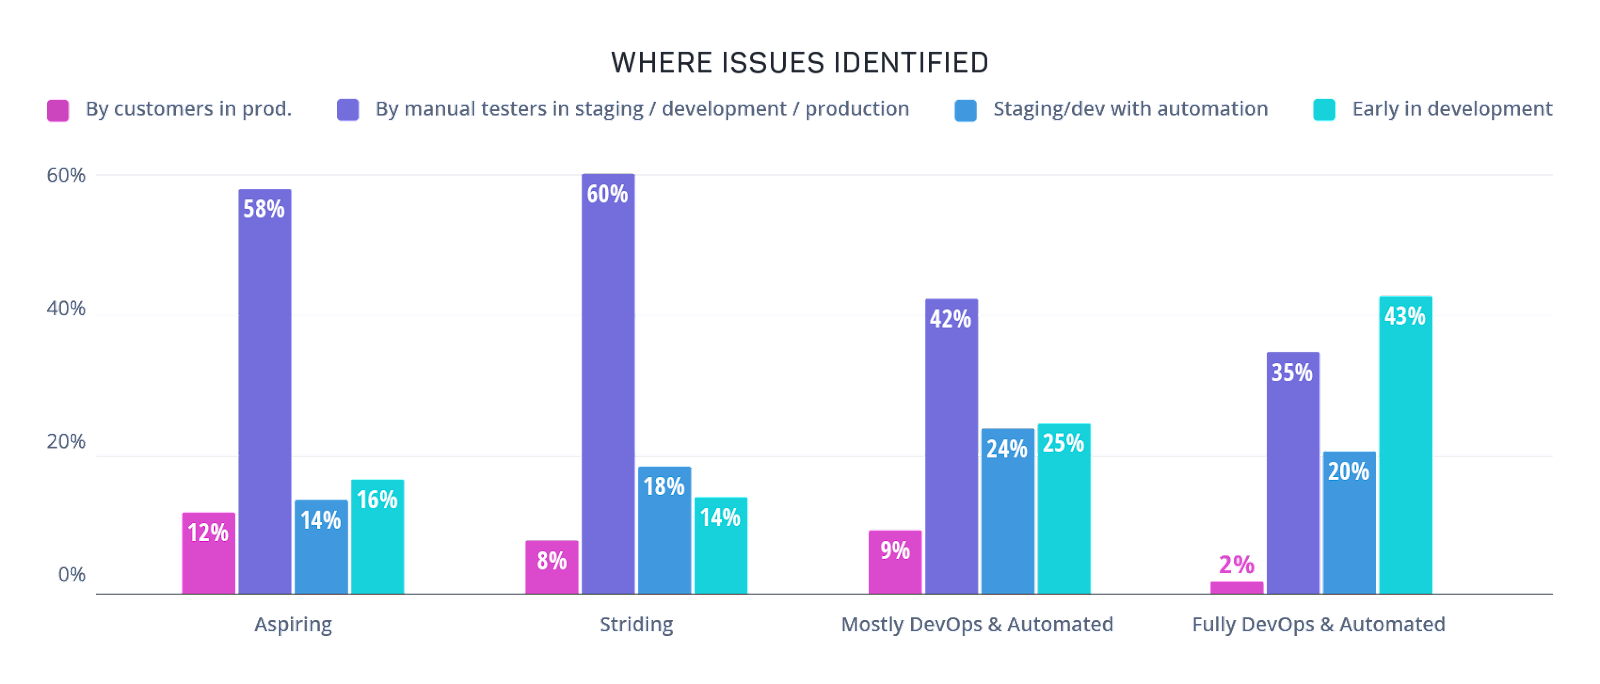 Bar graph showing where issues were identified - by customers in prod, by manual testing in staging, development or production, in staging or development with automation or early in development. Companies with full devops and automated testing identified issues far more early in development.